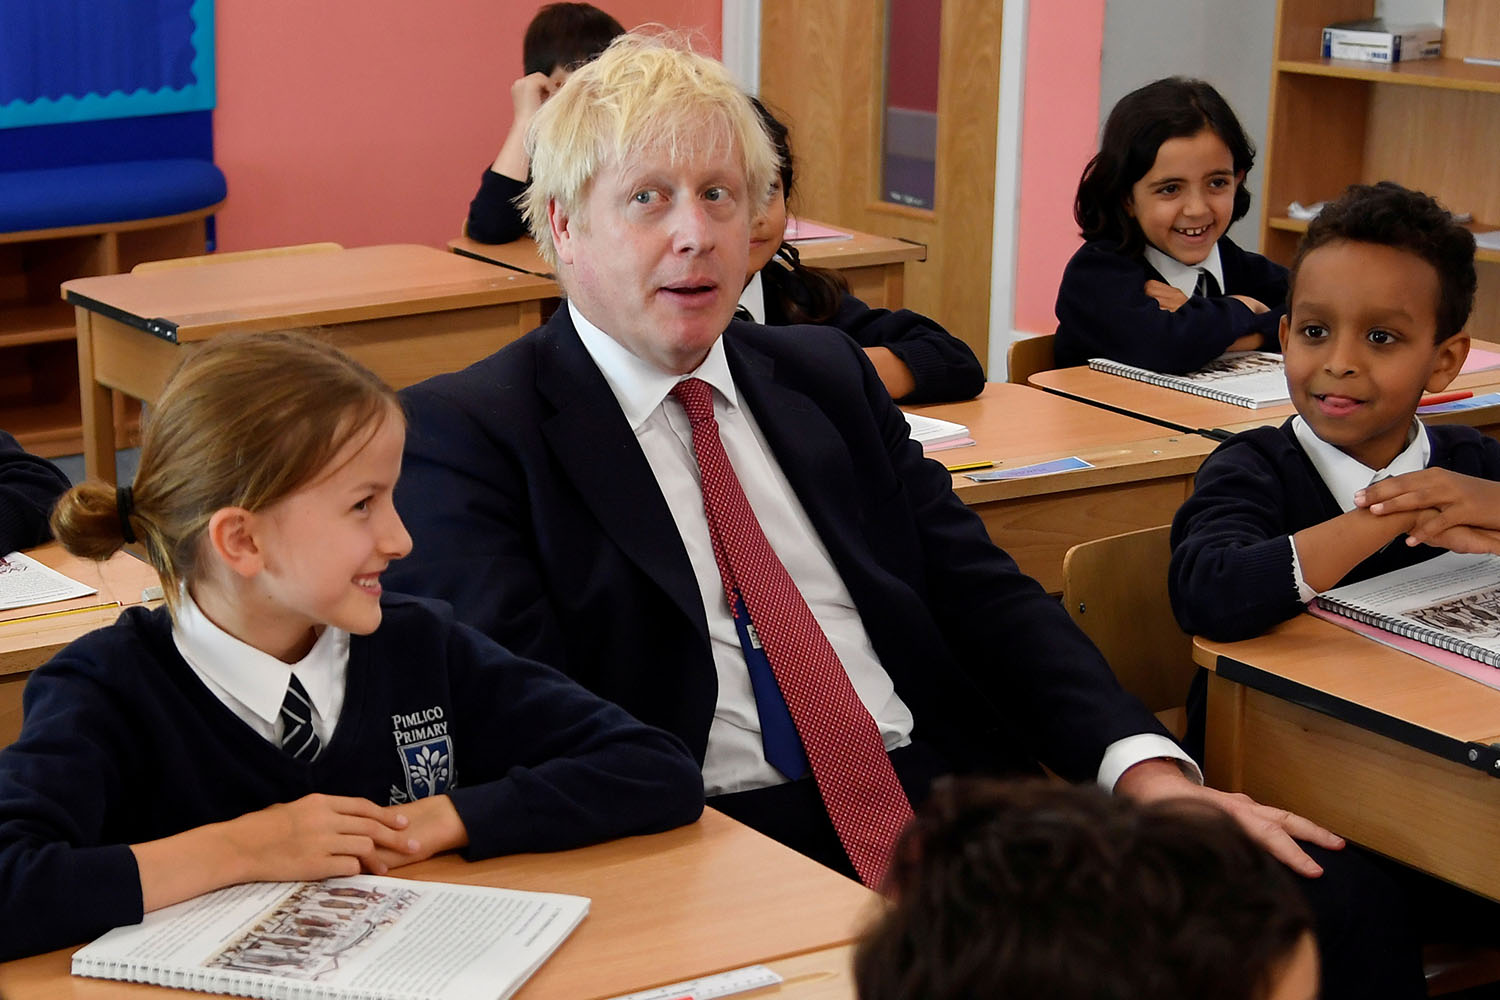 Britain's Prime Minister Boris Johnson attends a class during his visit to Pimlico Primary school in London on Sept. 10. TOBY MELVILLE/AFP via Getty Images